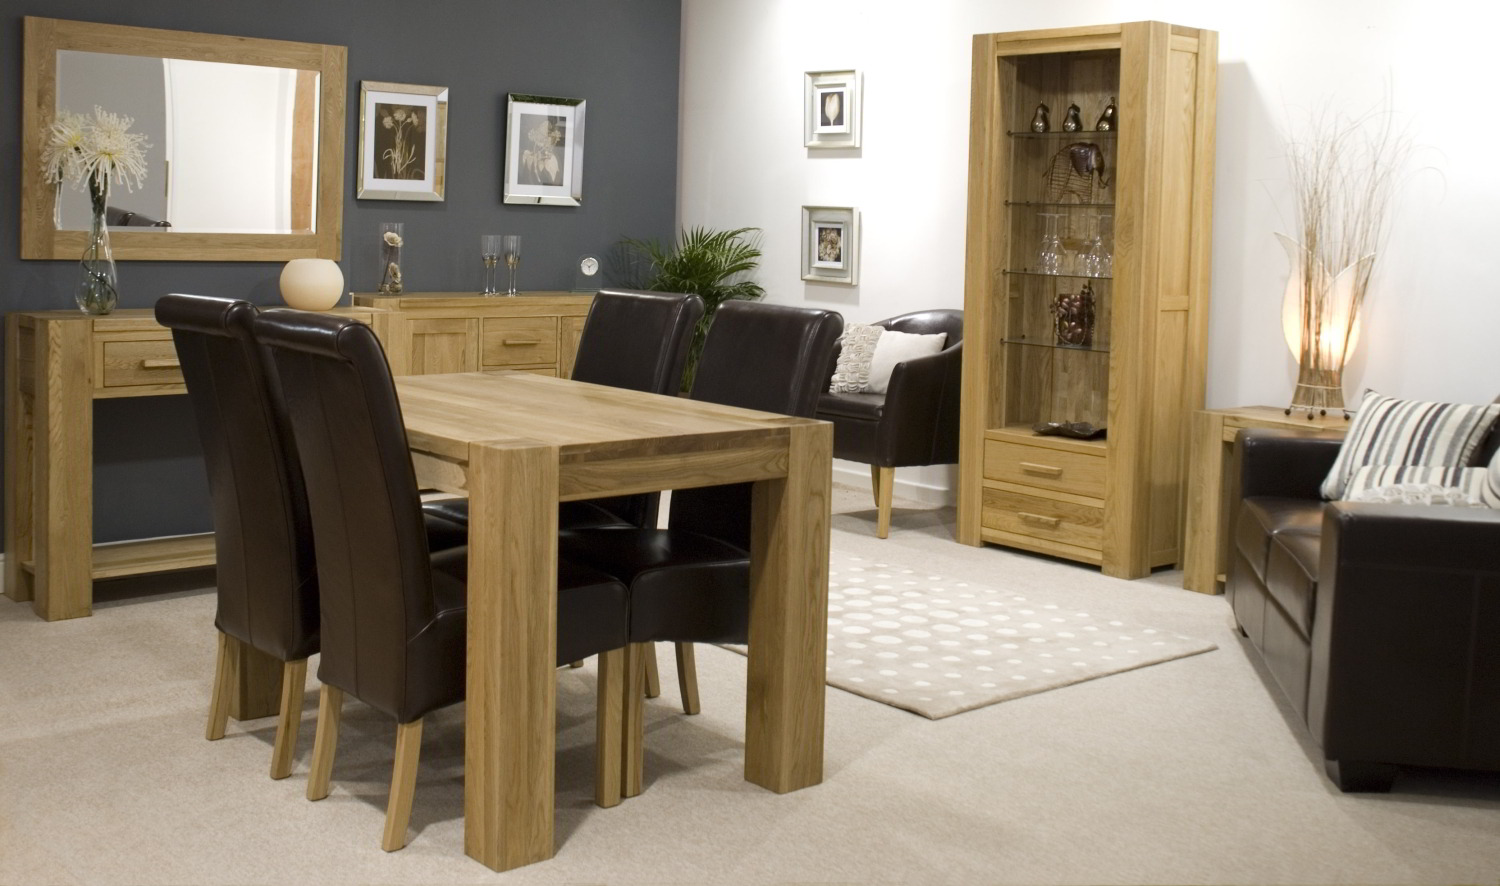 Pemberton Solid Modern Oak Hallway Furniture Console Hall